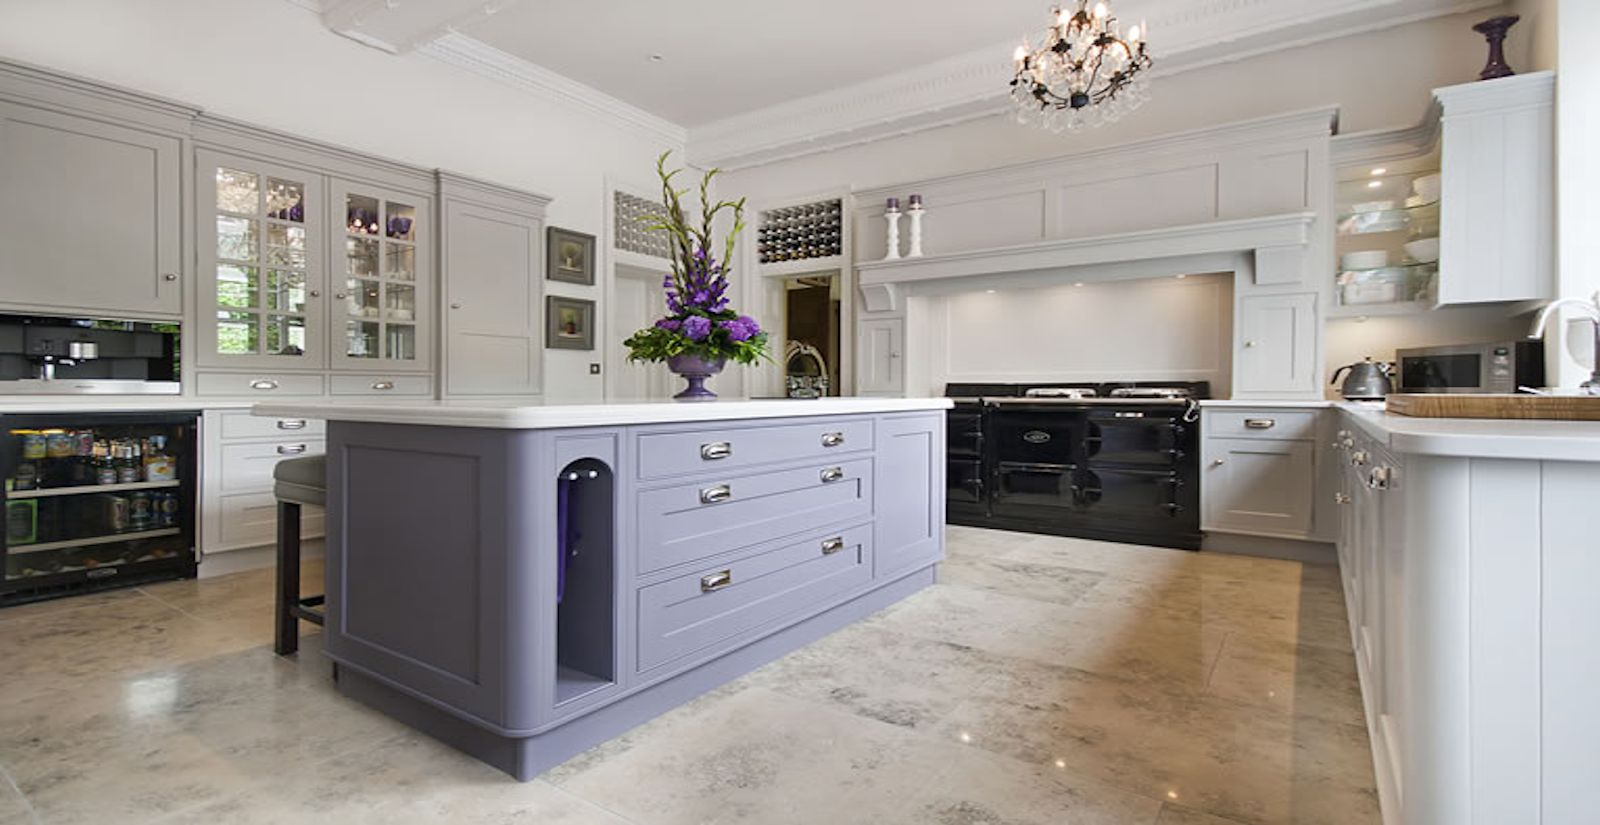 Kitchen design cabinet supplier commercial cabinetry for Kitchen cabinets hialeah